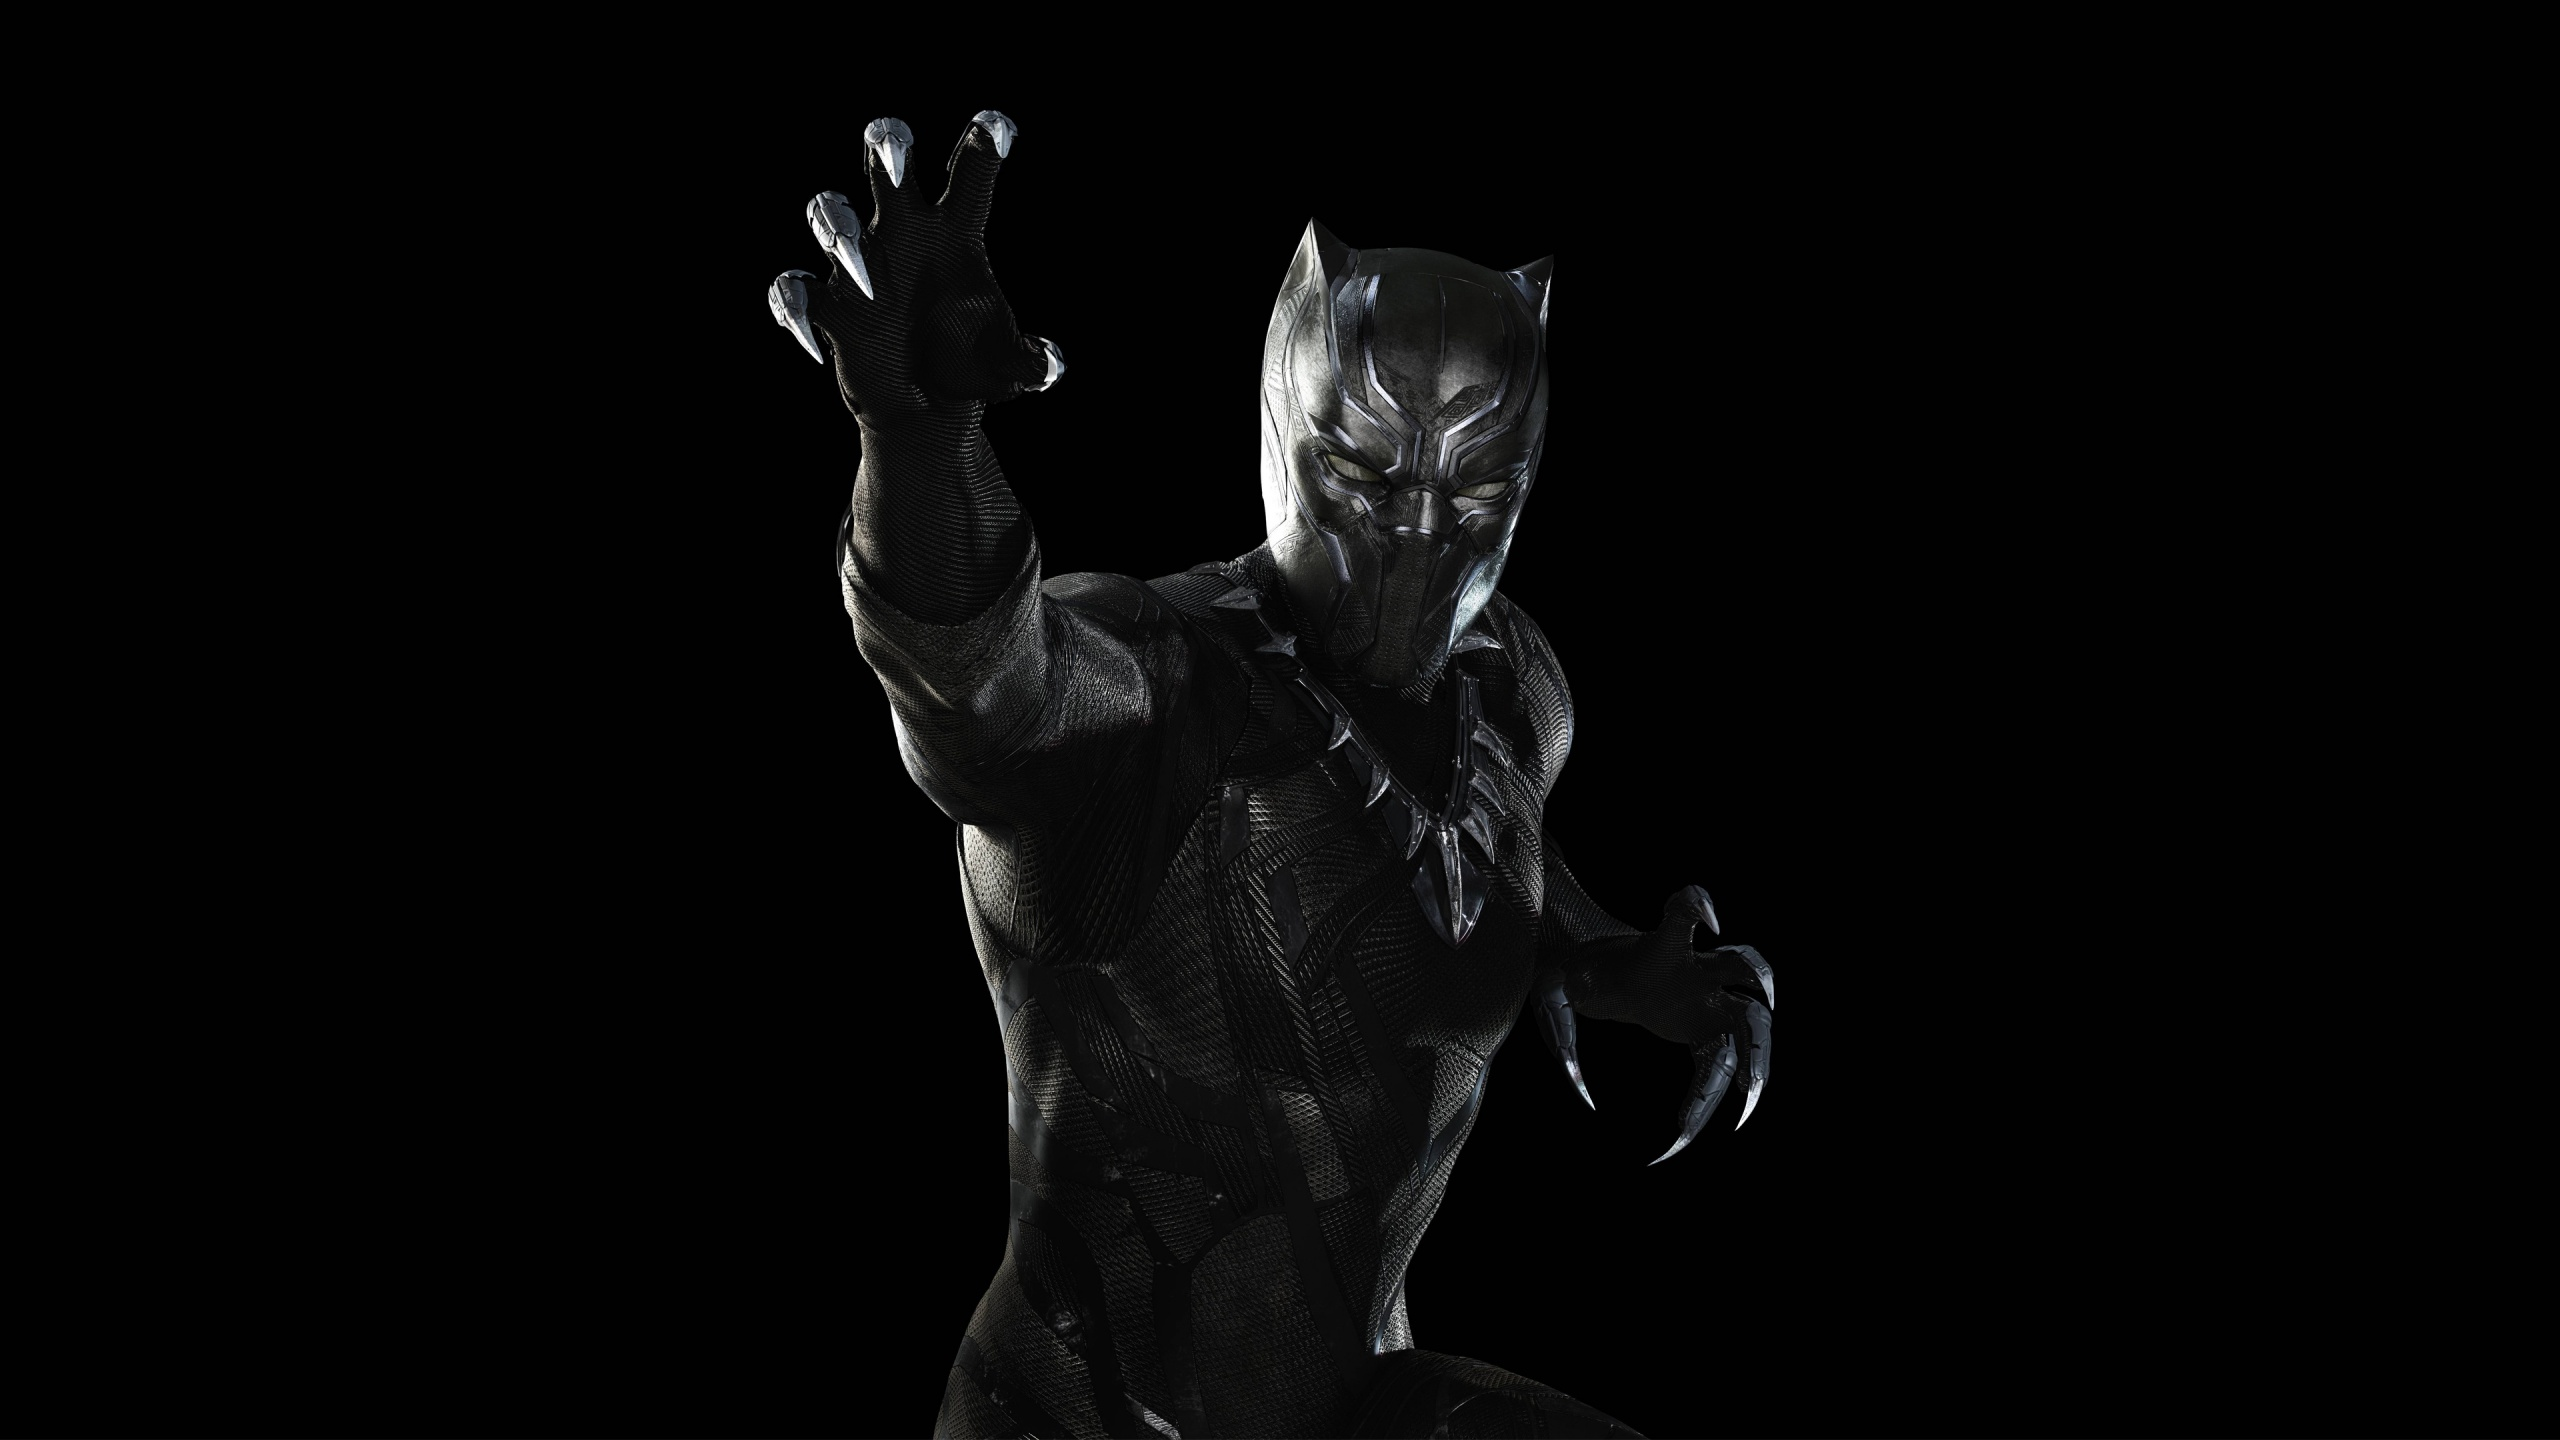 Black Panther Captain America Civil War Wallpapers HD Wallpapers 2560x1440